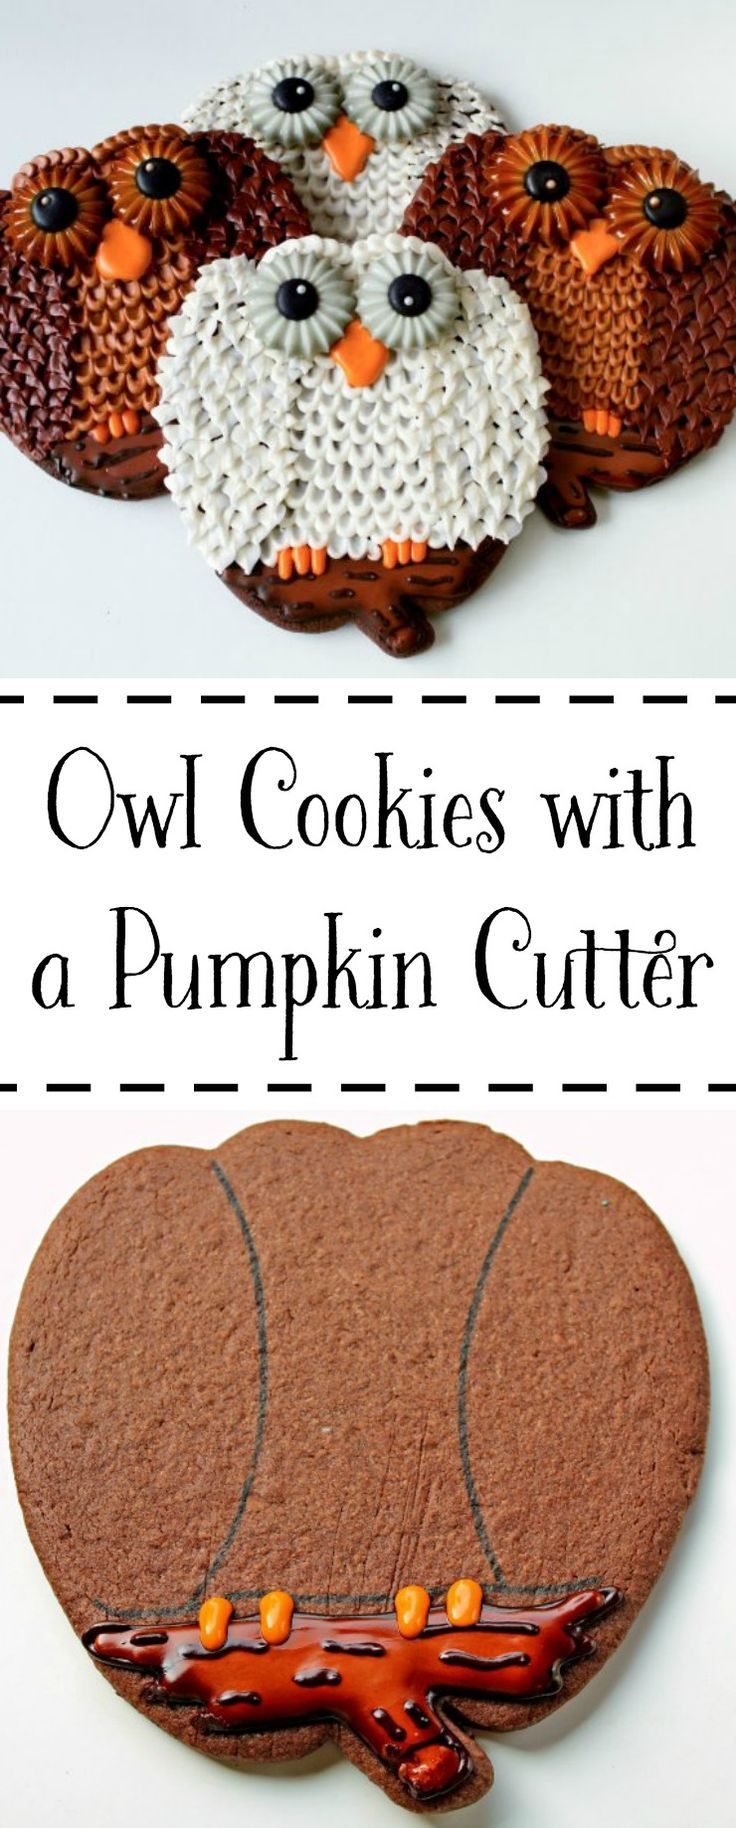 258 best Repurposed Cookie Cutters! images on Pinterest